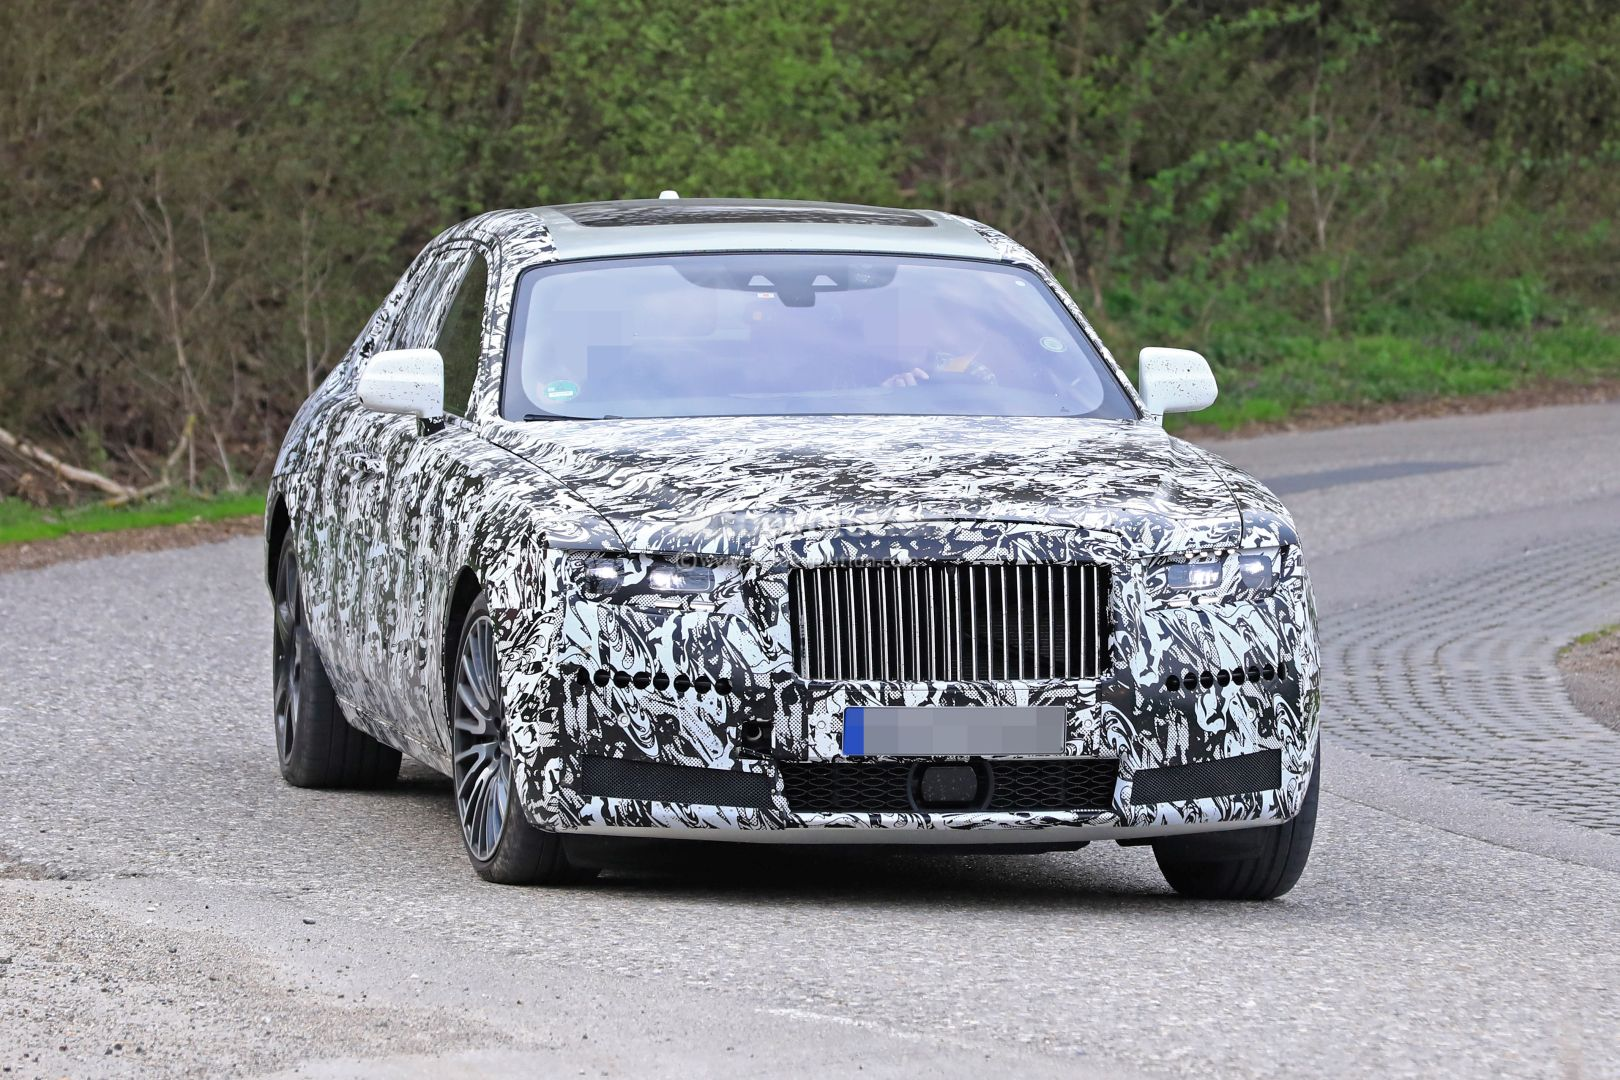 2021 Rolls-Royce Ghost Prototype Spotted On The Road ...